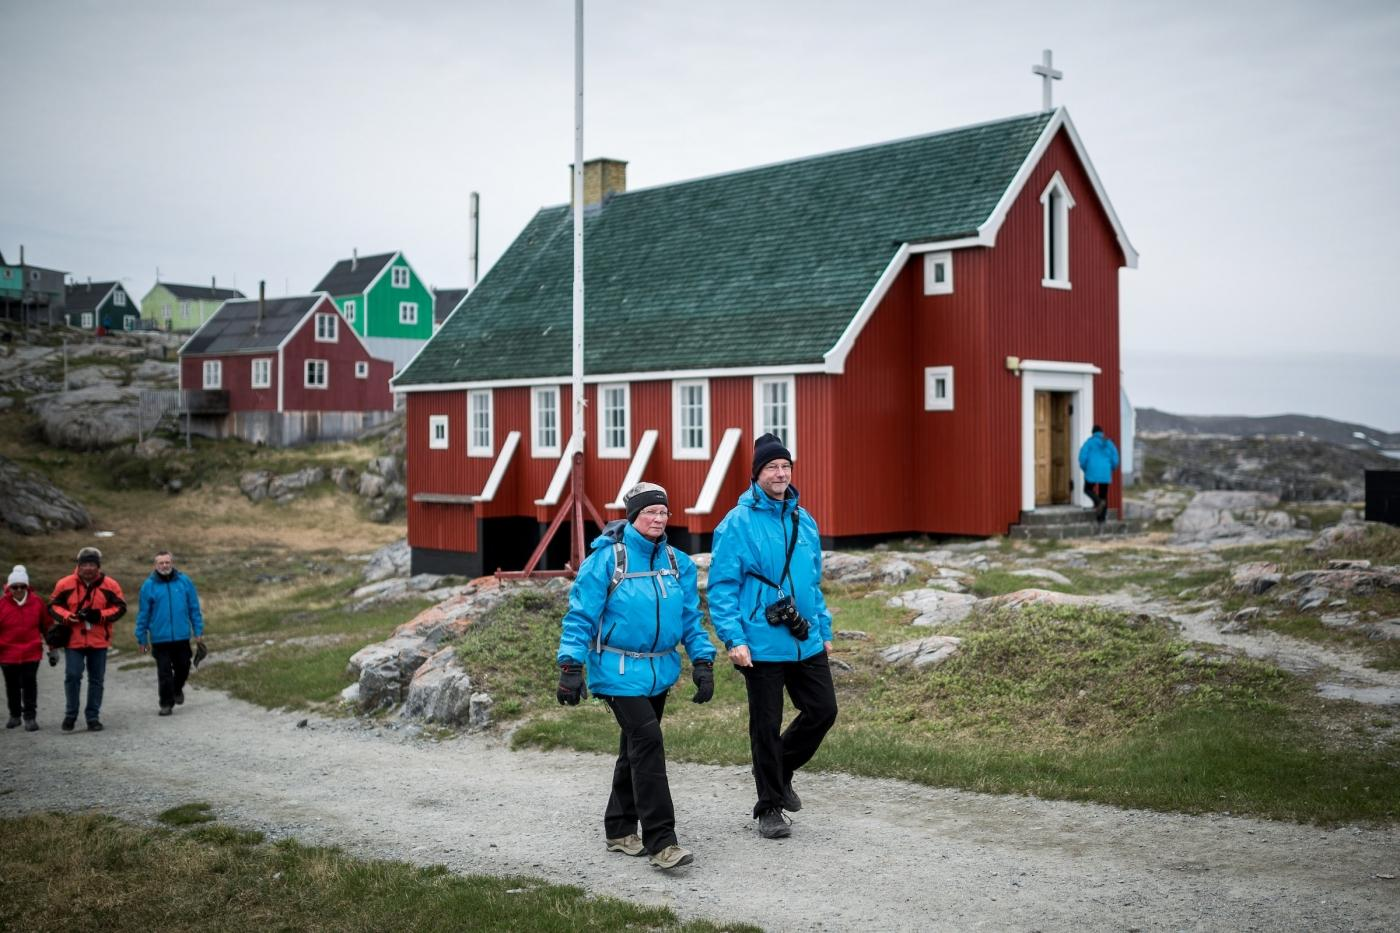 MS Fram cruise guests walking by the church in Itilleq in Greenland. Photo by Mads Pihl - Visit Greenland